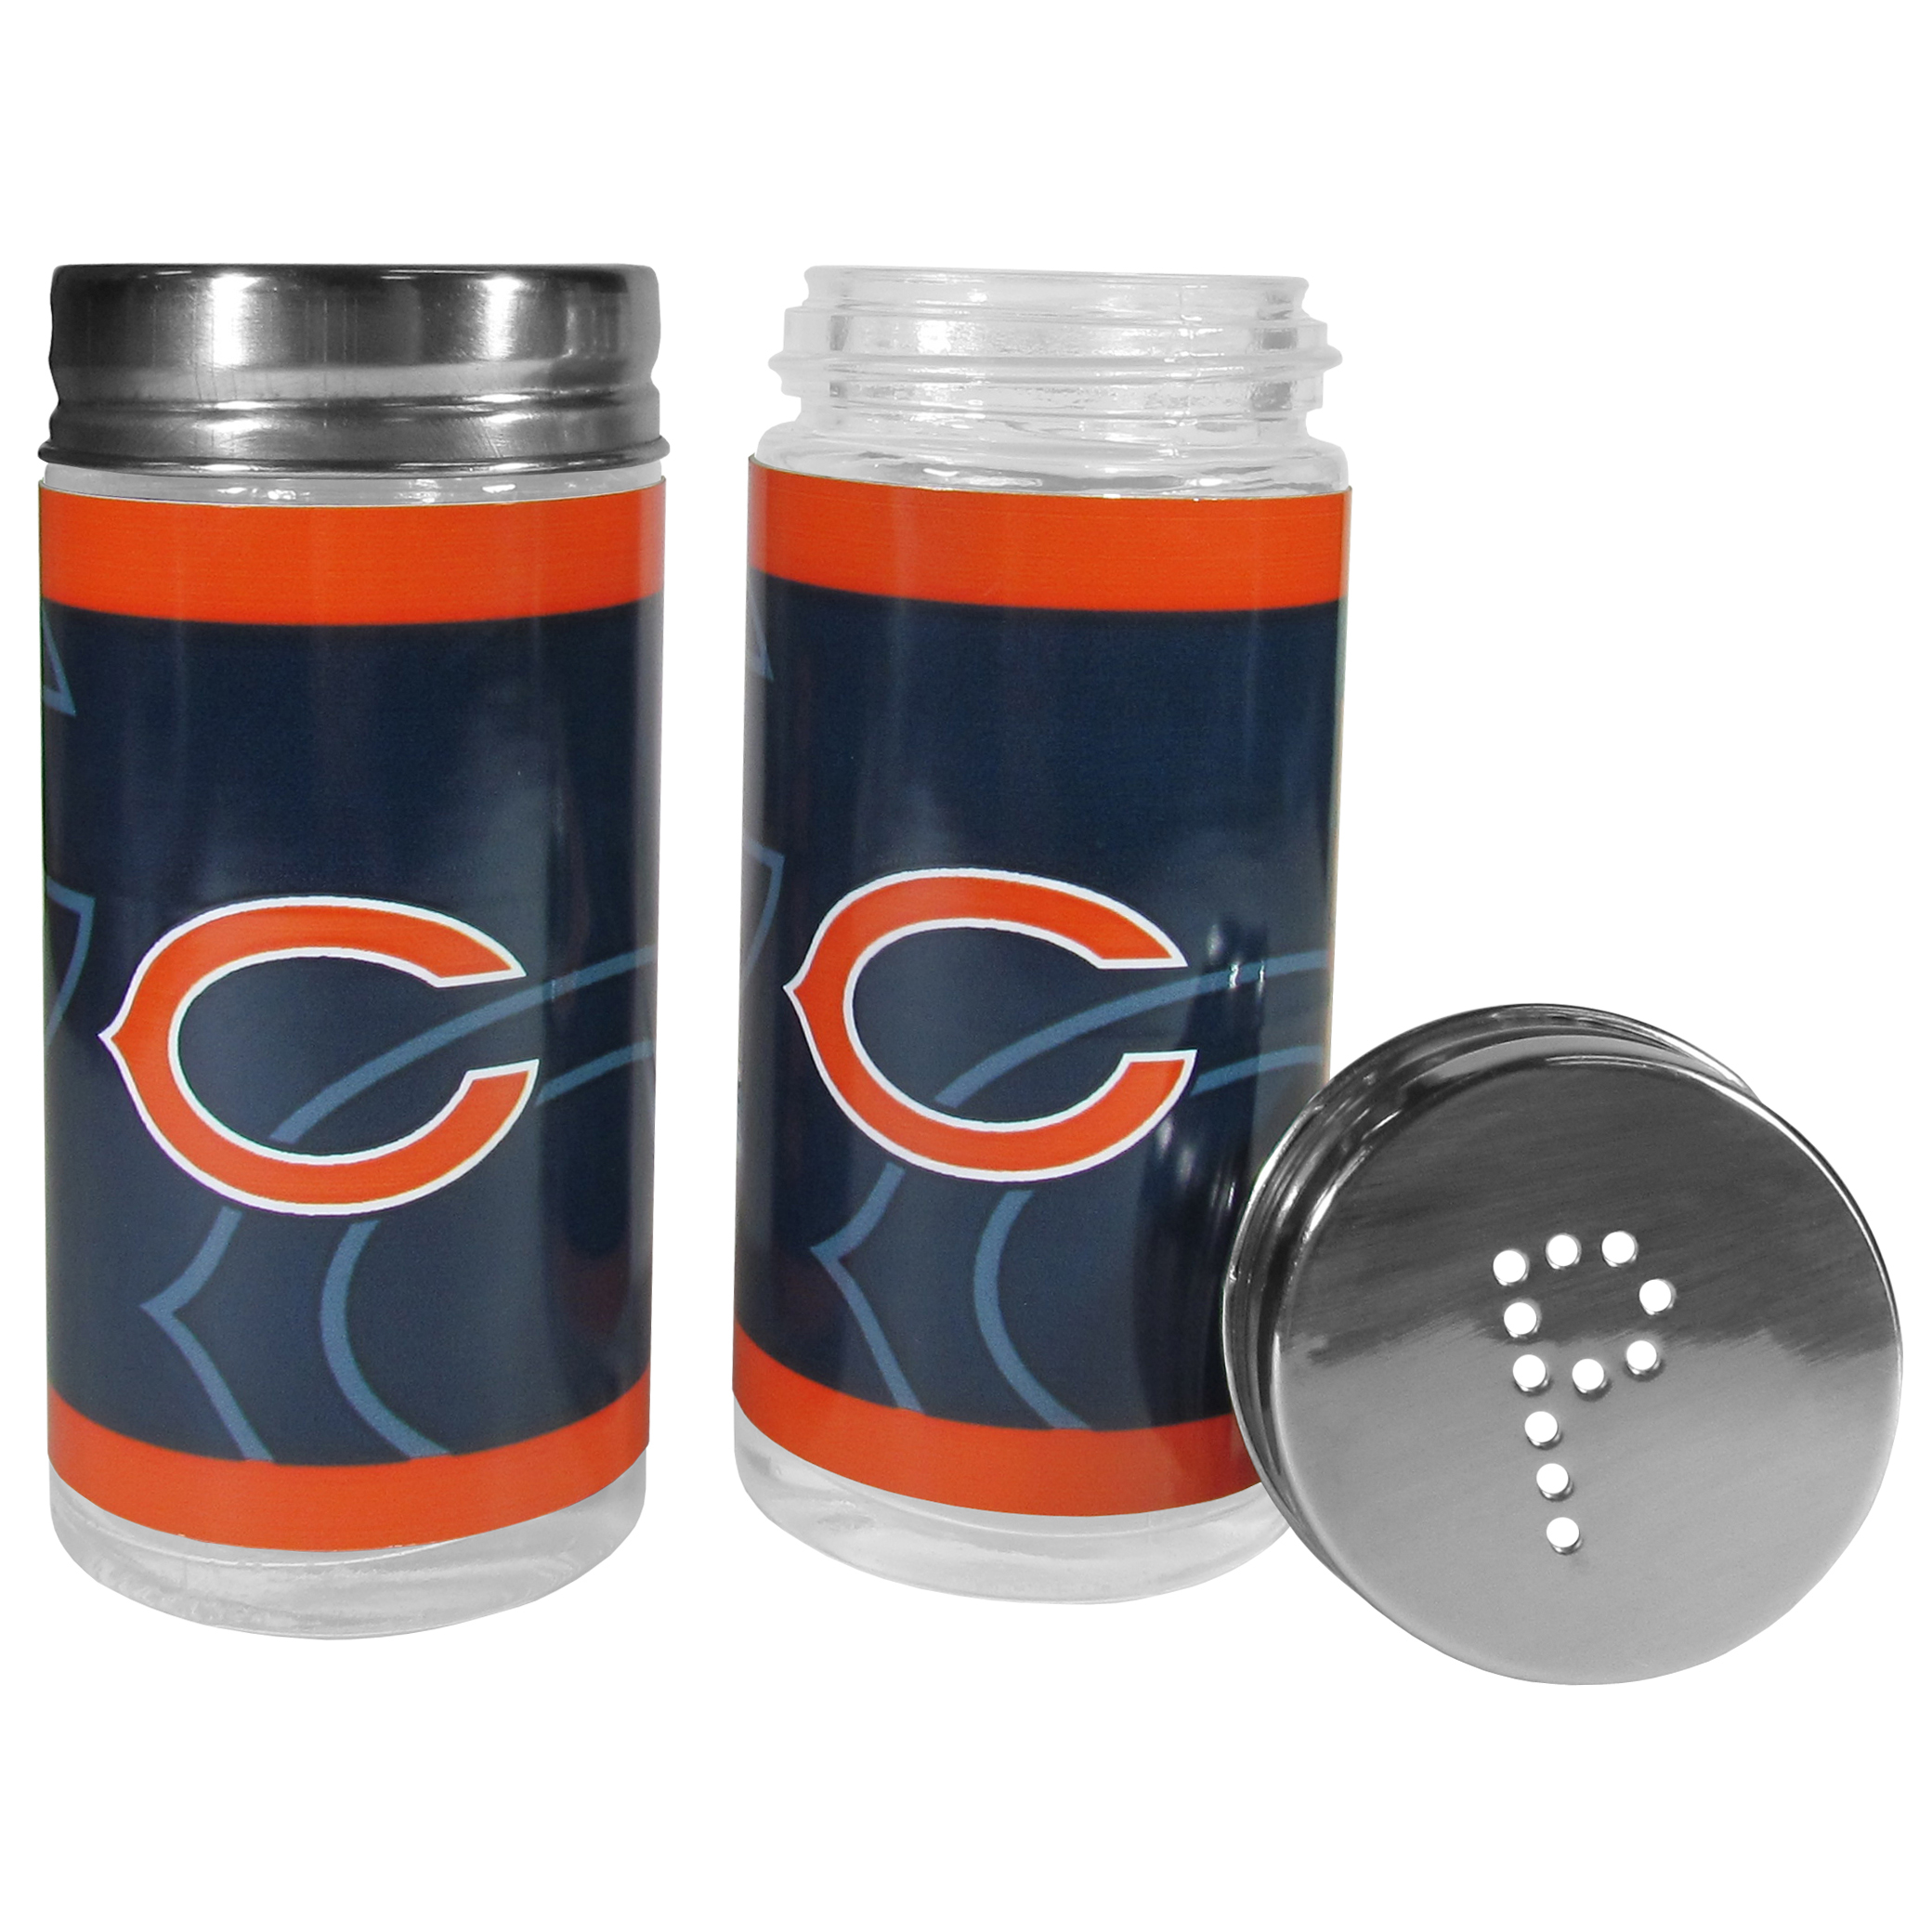 Chicago Bears Tailgater Salt and Pepper Shakers - No tailgate party is complete without your Chicago Bears salt & pepper shakers featuring bright team graphics. The glass shakers are 3.75 inches tall and the screw top lids have holes that spell out P and S. These team shakers are a great grill accessory whether you are barbecuing on the patio, picnicing or having a game day party.